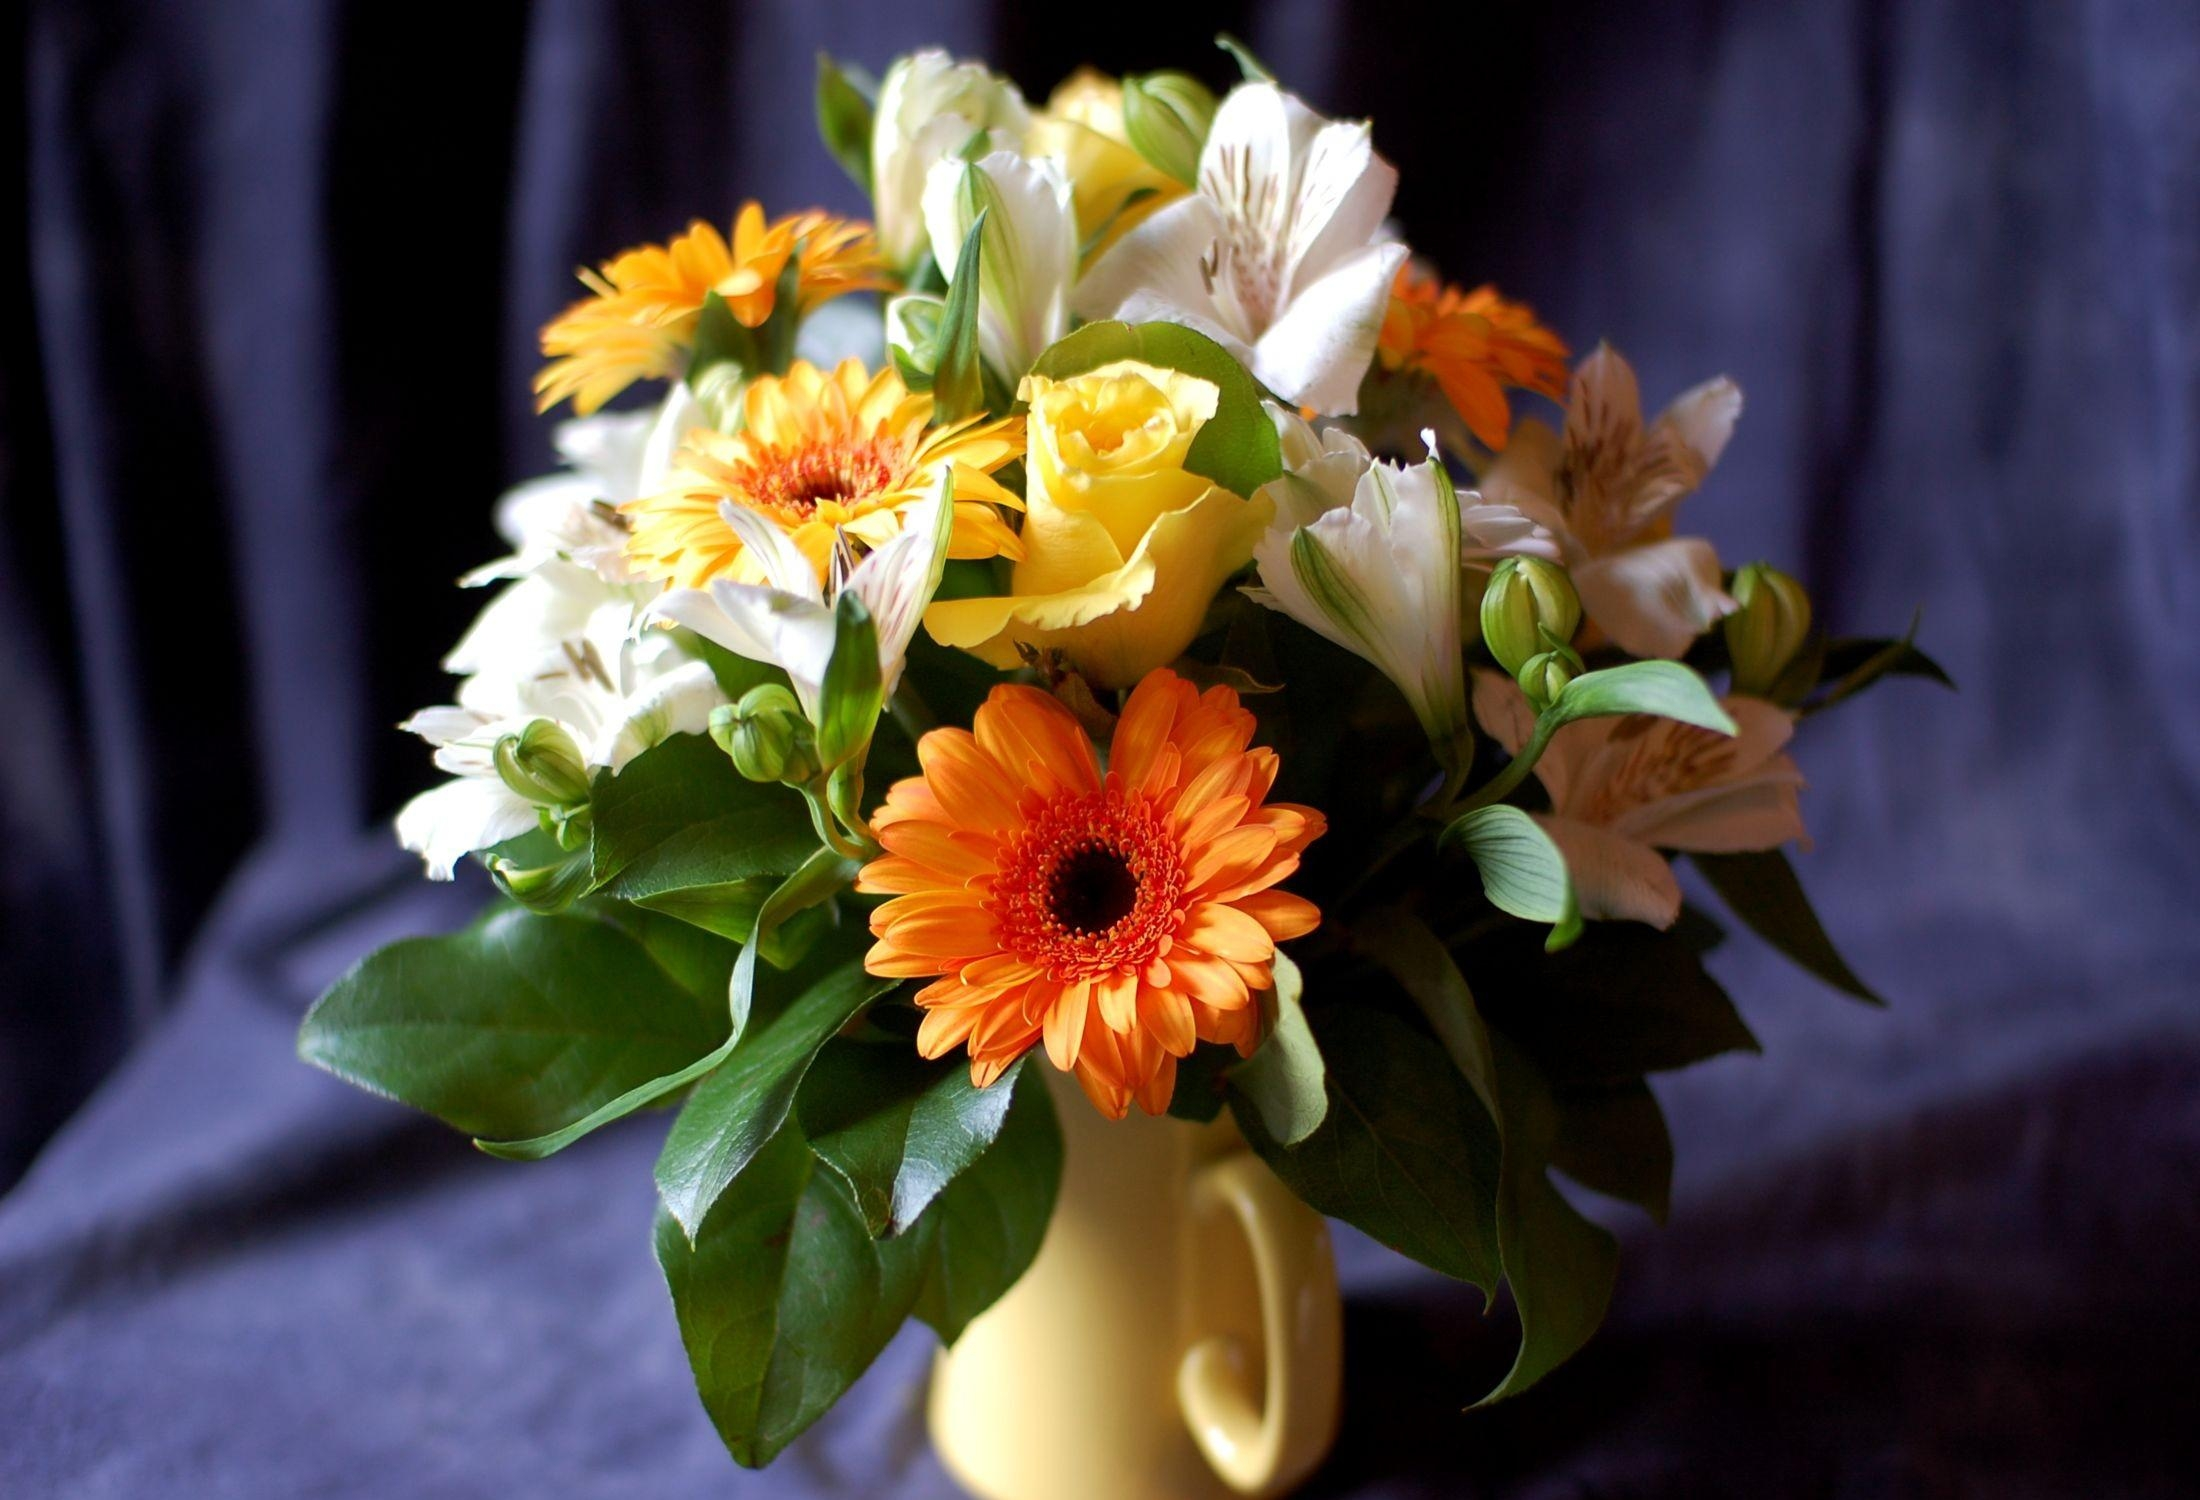 117281 download wallpaper Flowers, Alstroemeria, Leaves, Bouquet, Roses, Gerberas screensavers and pictures for free